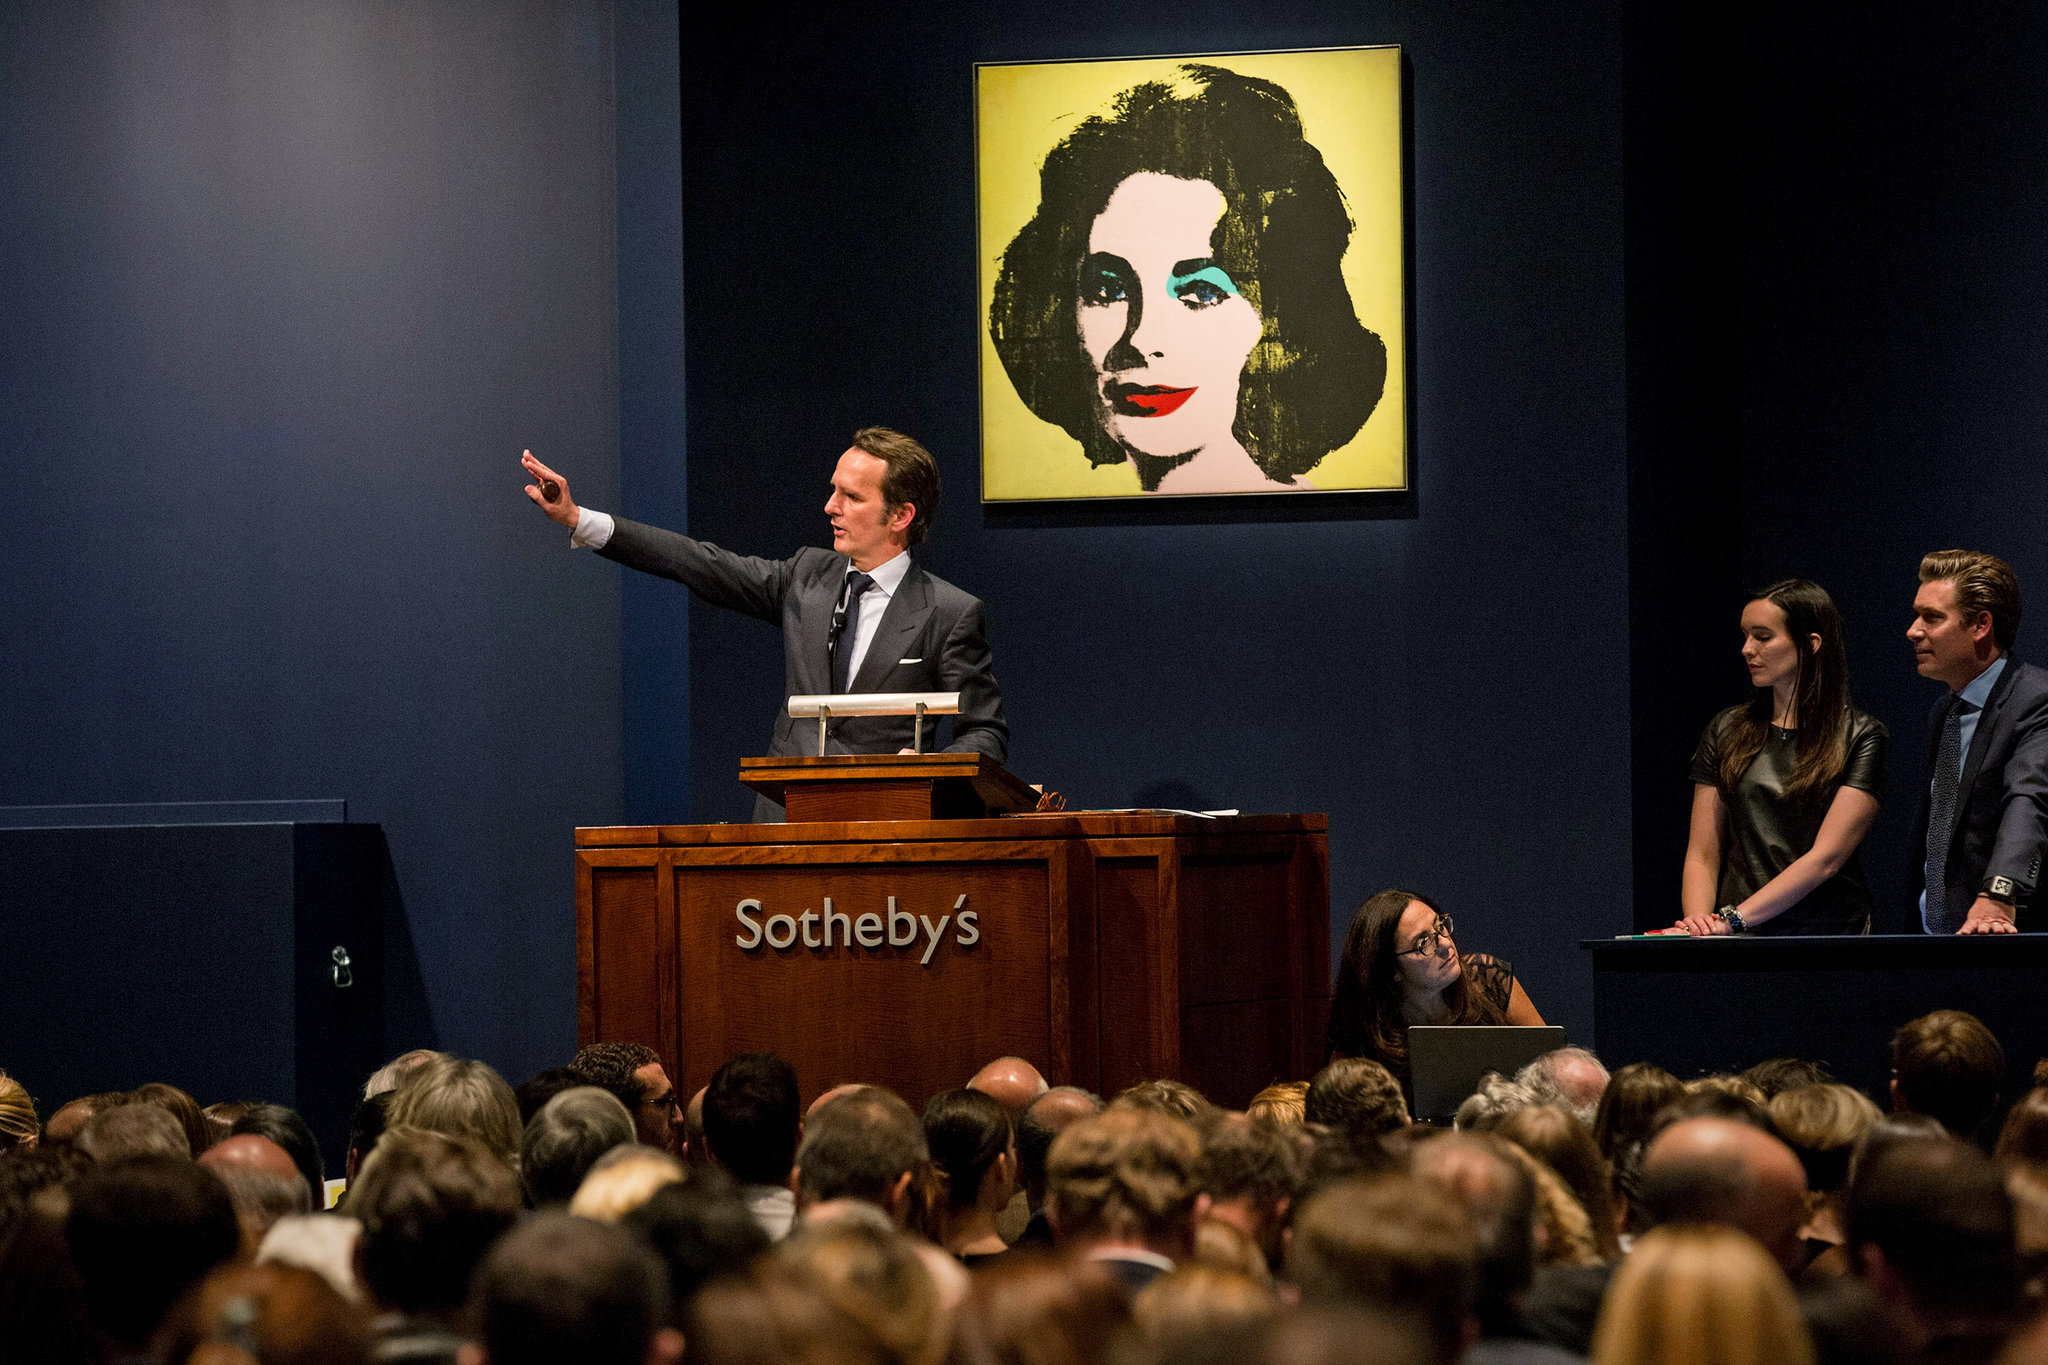 sothebys christies auction house scandal - HD2048×1365